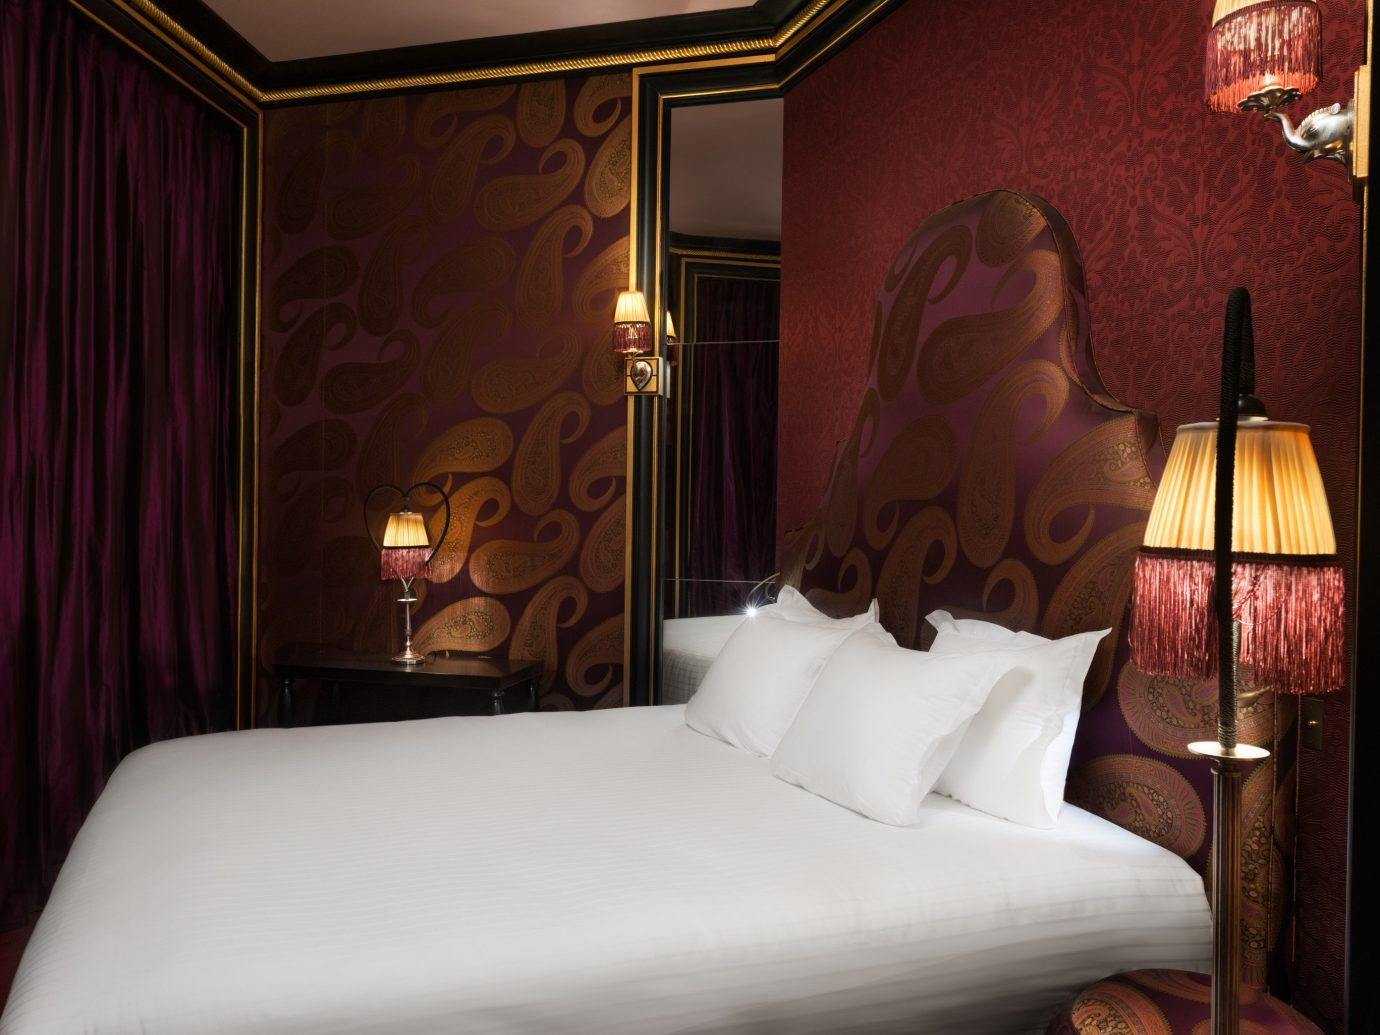 France Hotels Paris indoor bed sofa wall room hotel curtain Suite white interior design lighting Bedroom pillow cottage decorated night